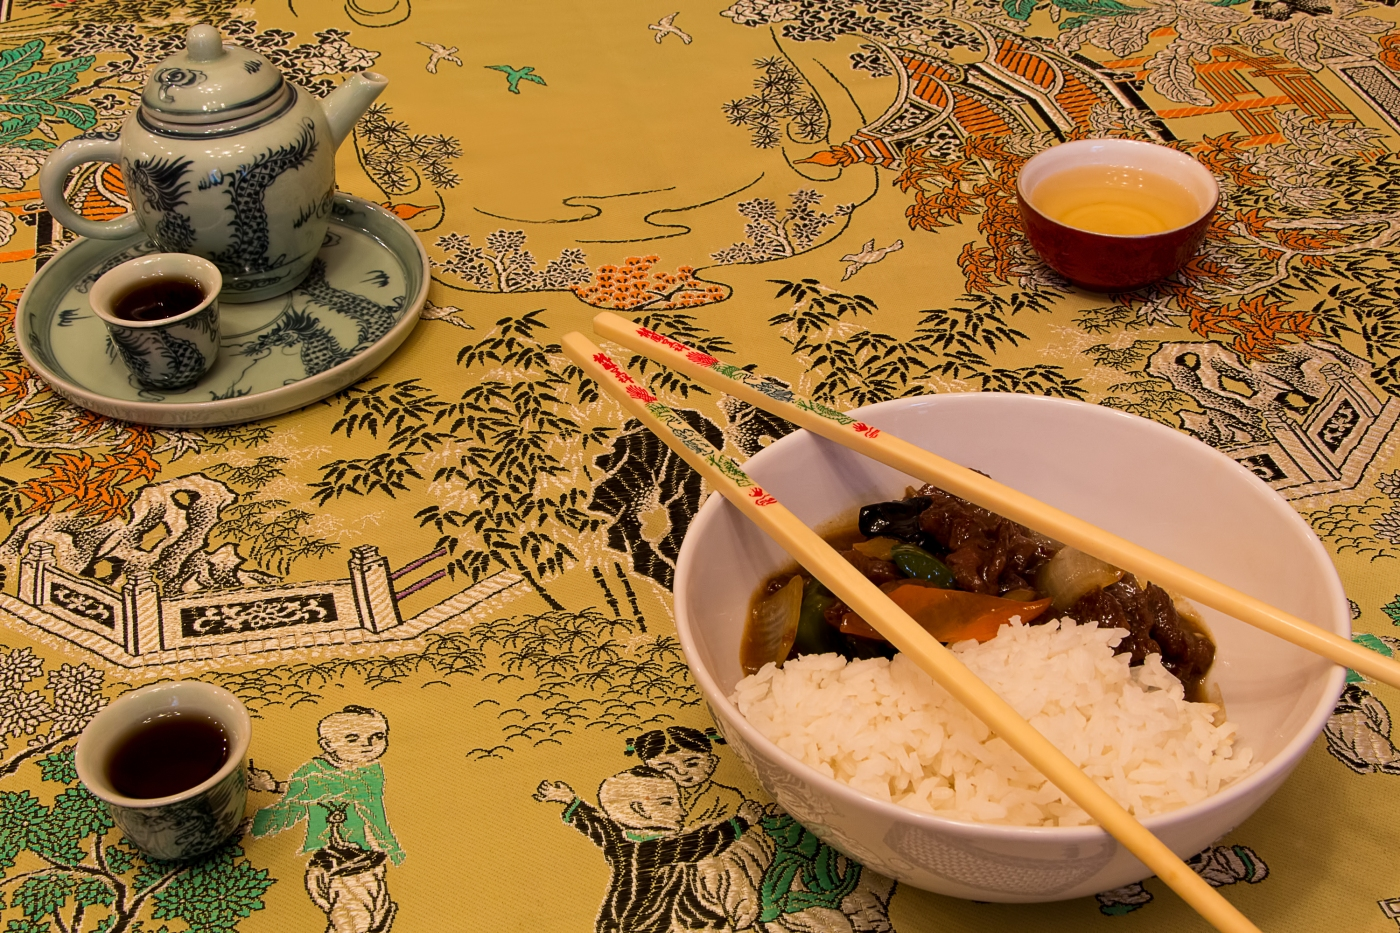 Chinese fast food served on a stylish tablecloth.